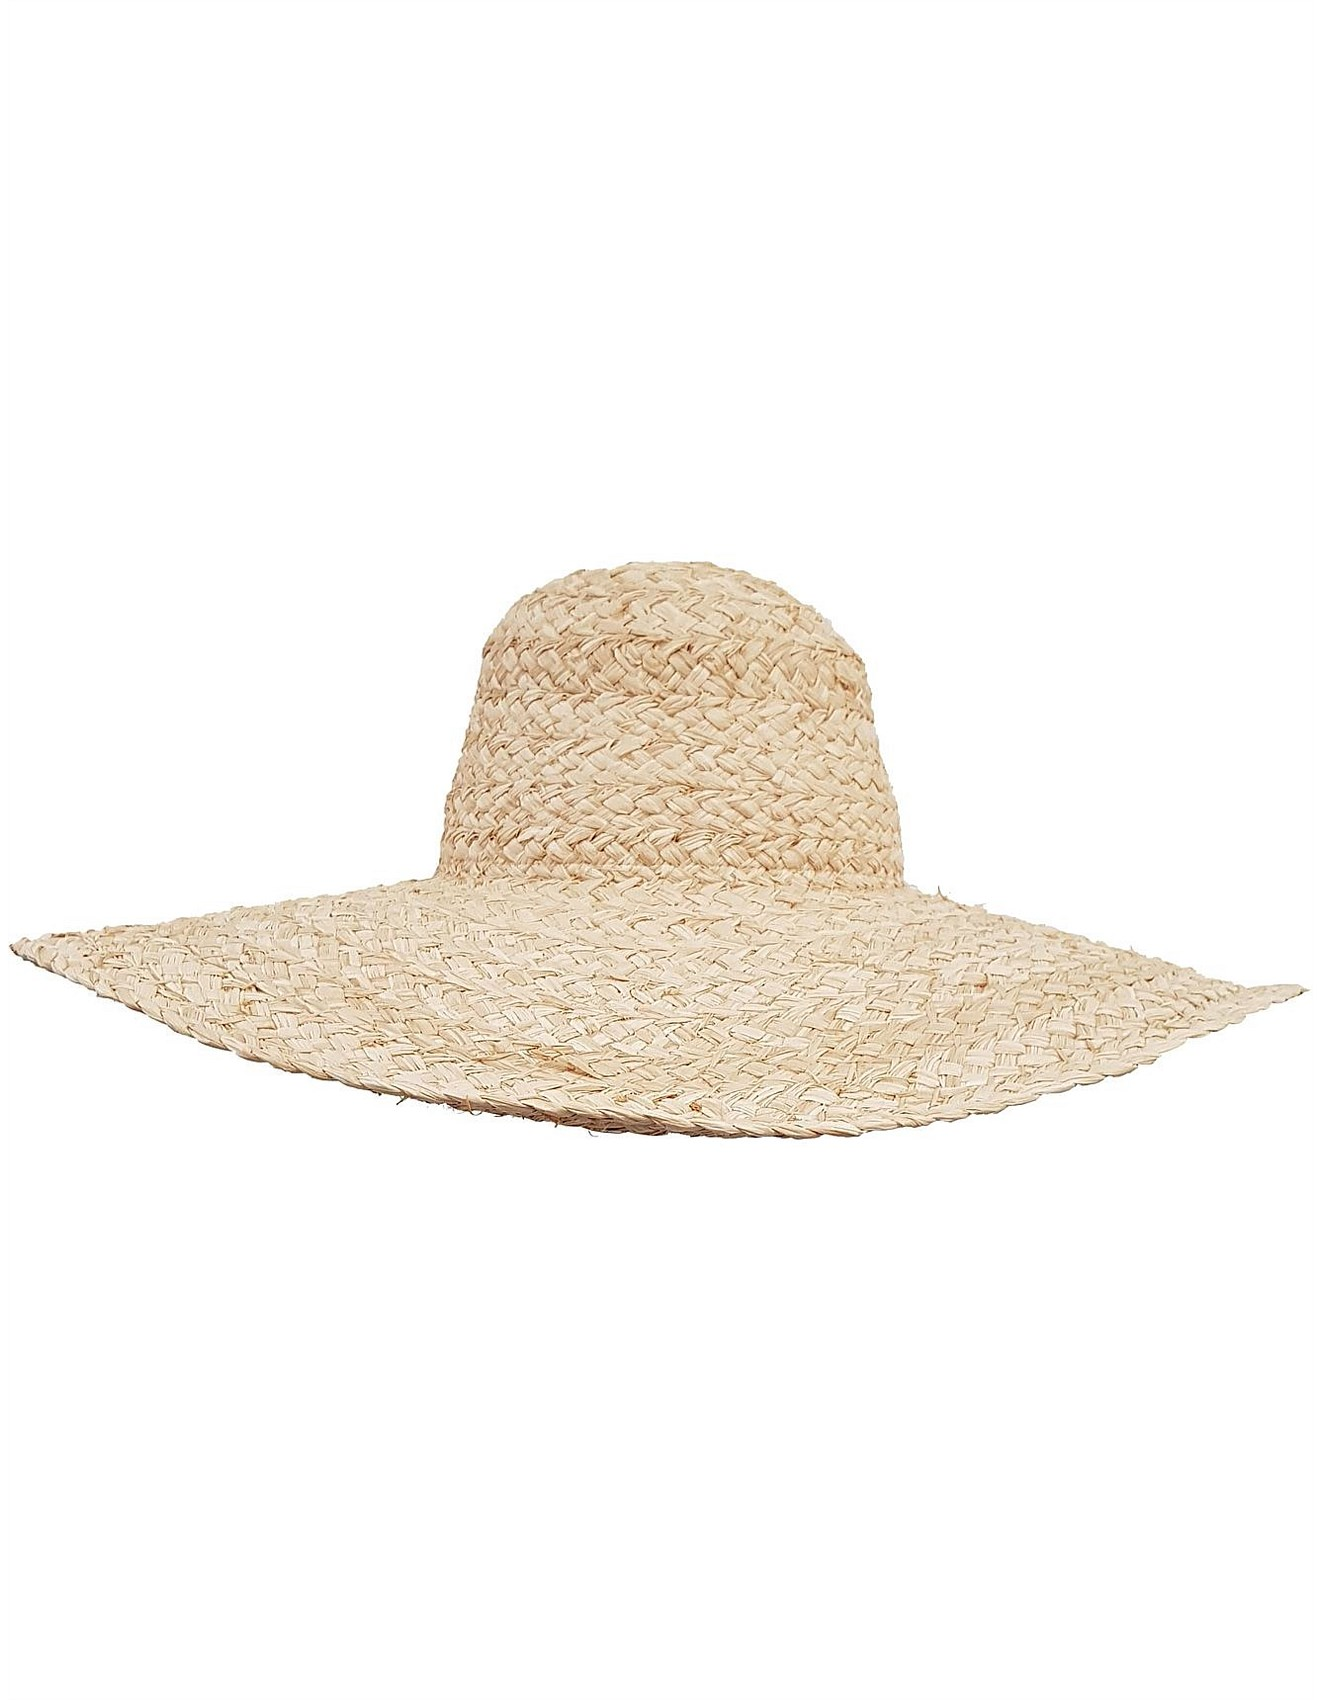 6da518b5d3355 WIDE BRIM HAT IN HAND WOVEN RAFFIA STRAW Special Offer. 1